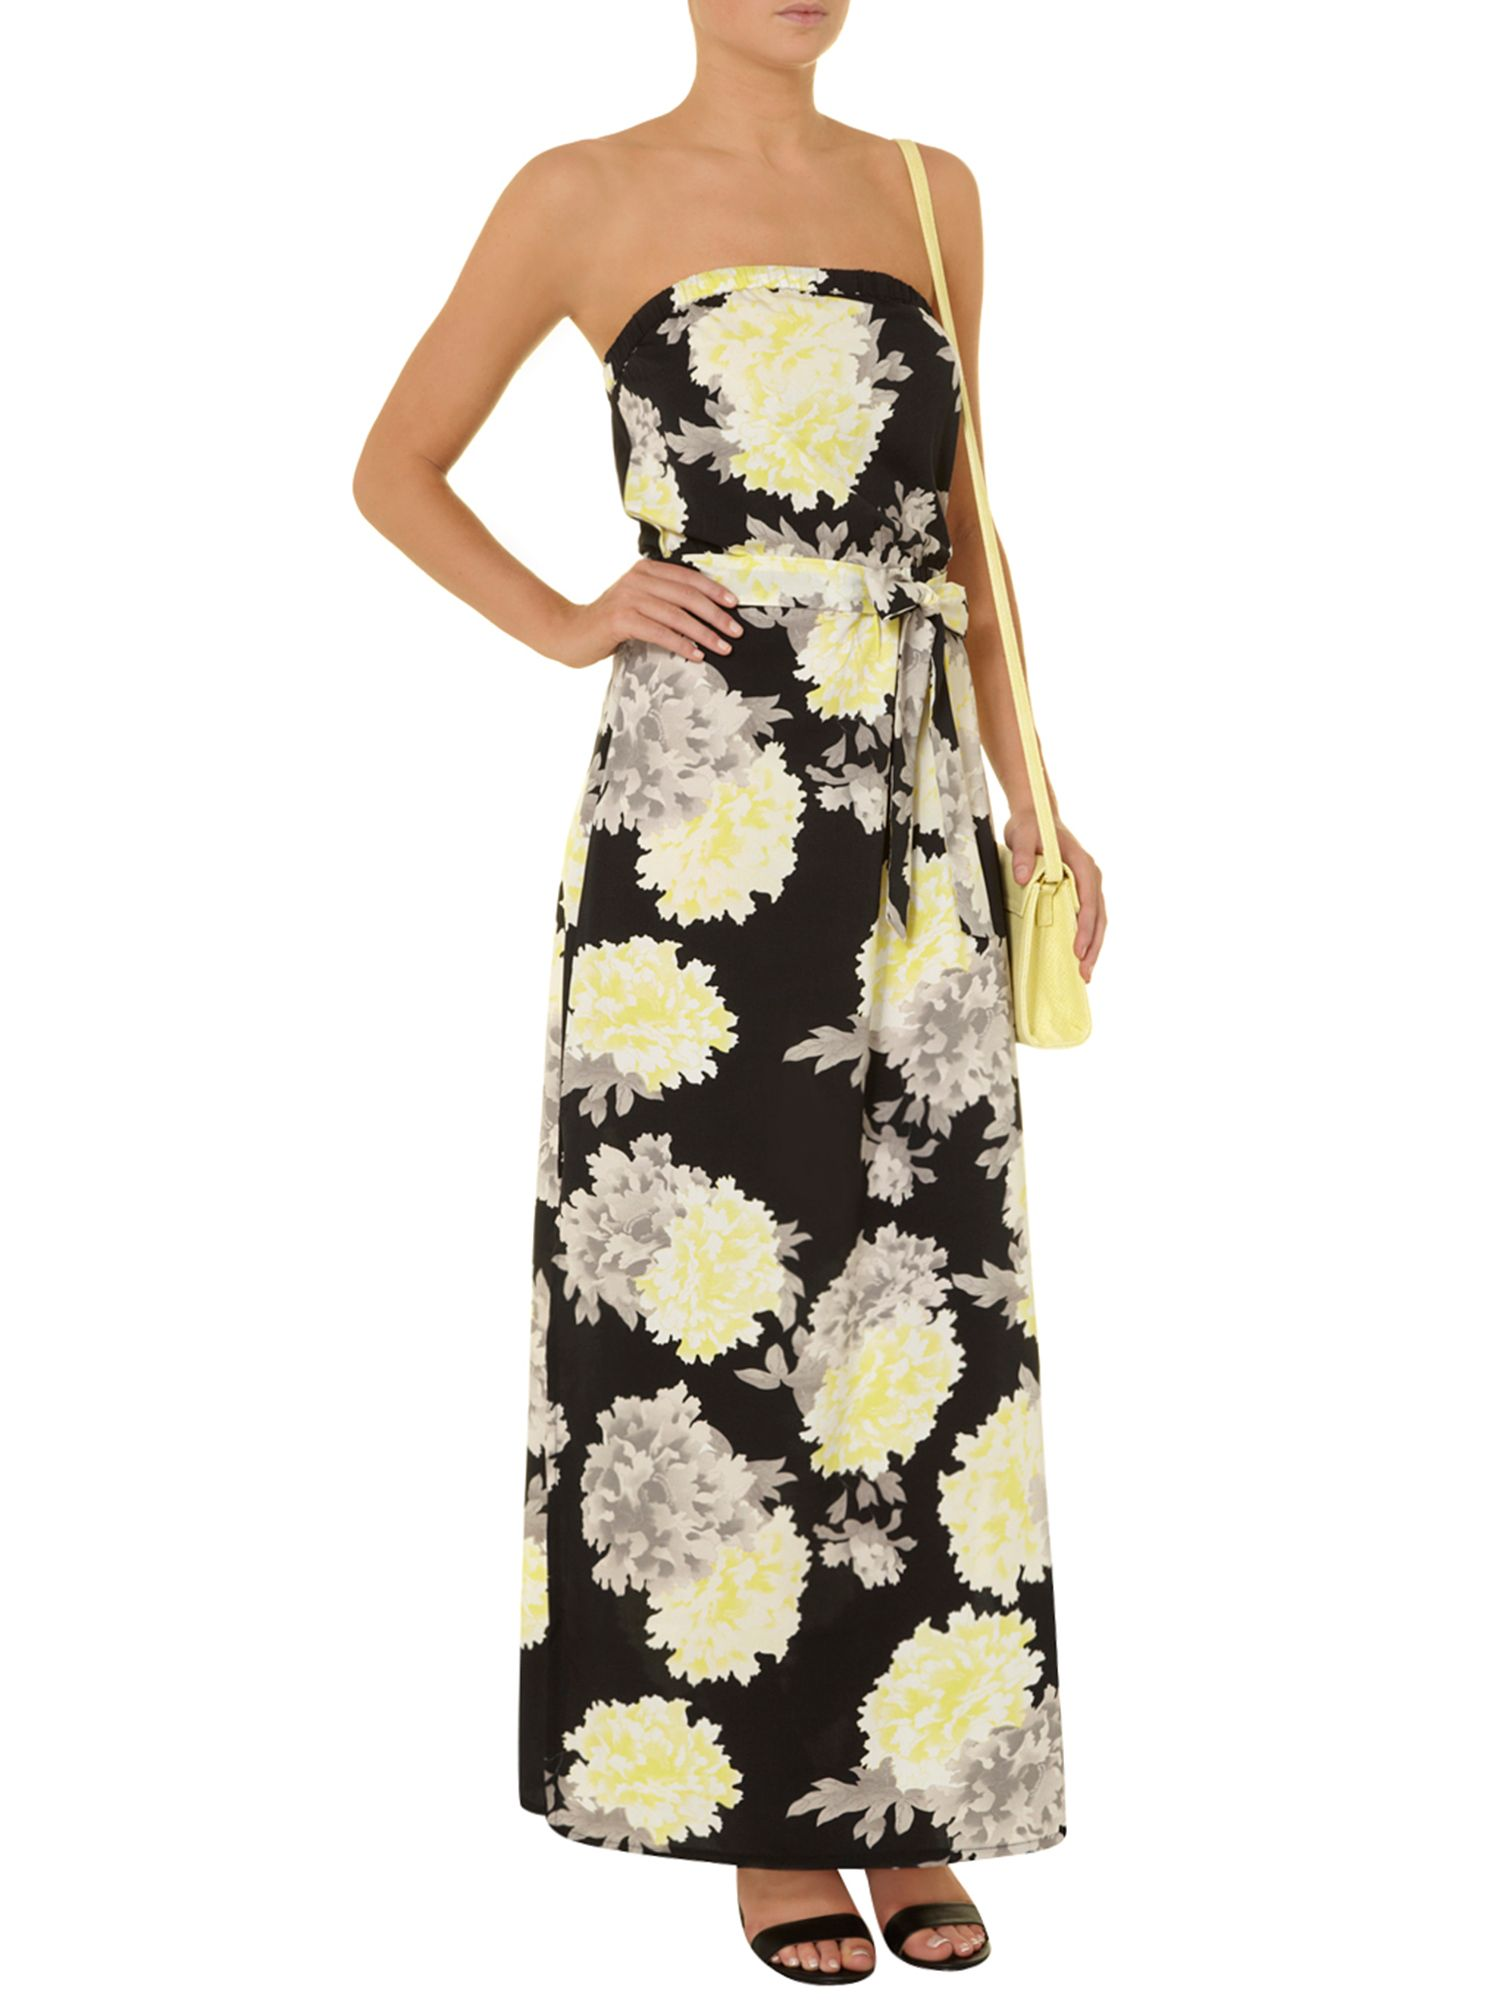 Floral bandeai maxi dress